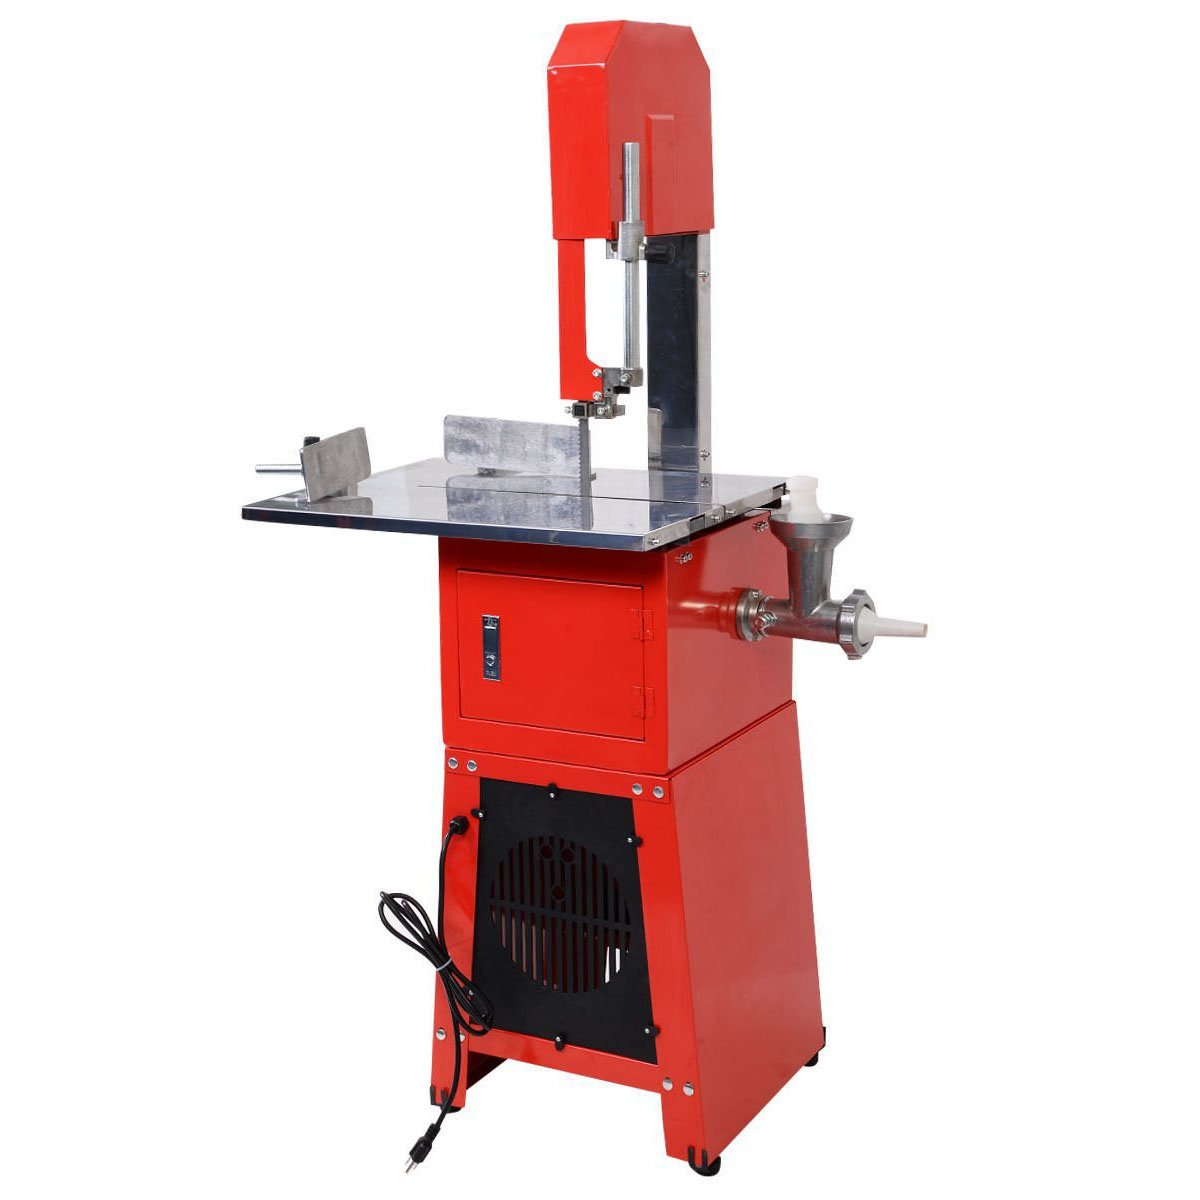 Tangkula Electric 550W Proffessional Butcher Meat Band Saw & Grinder